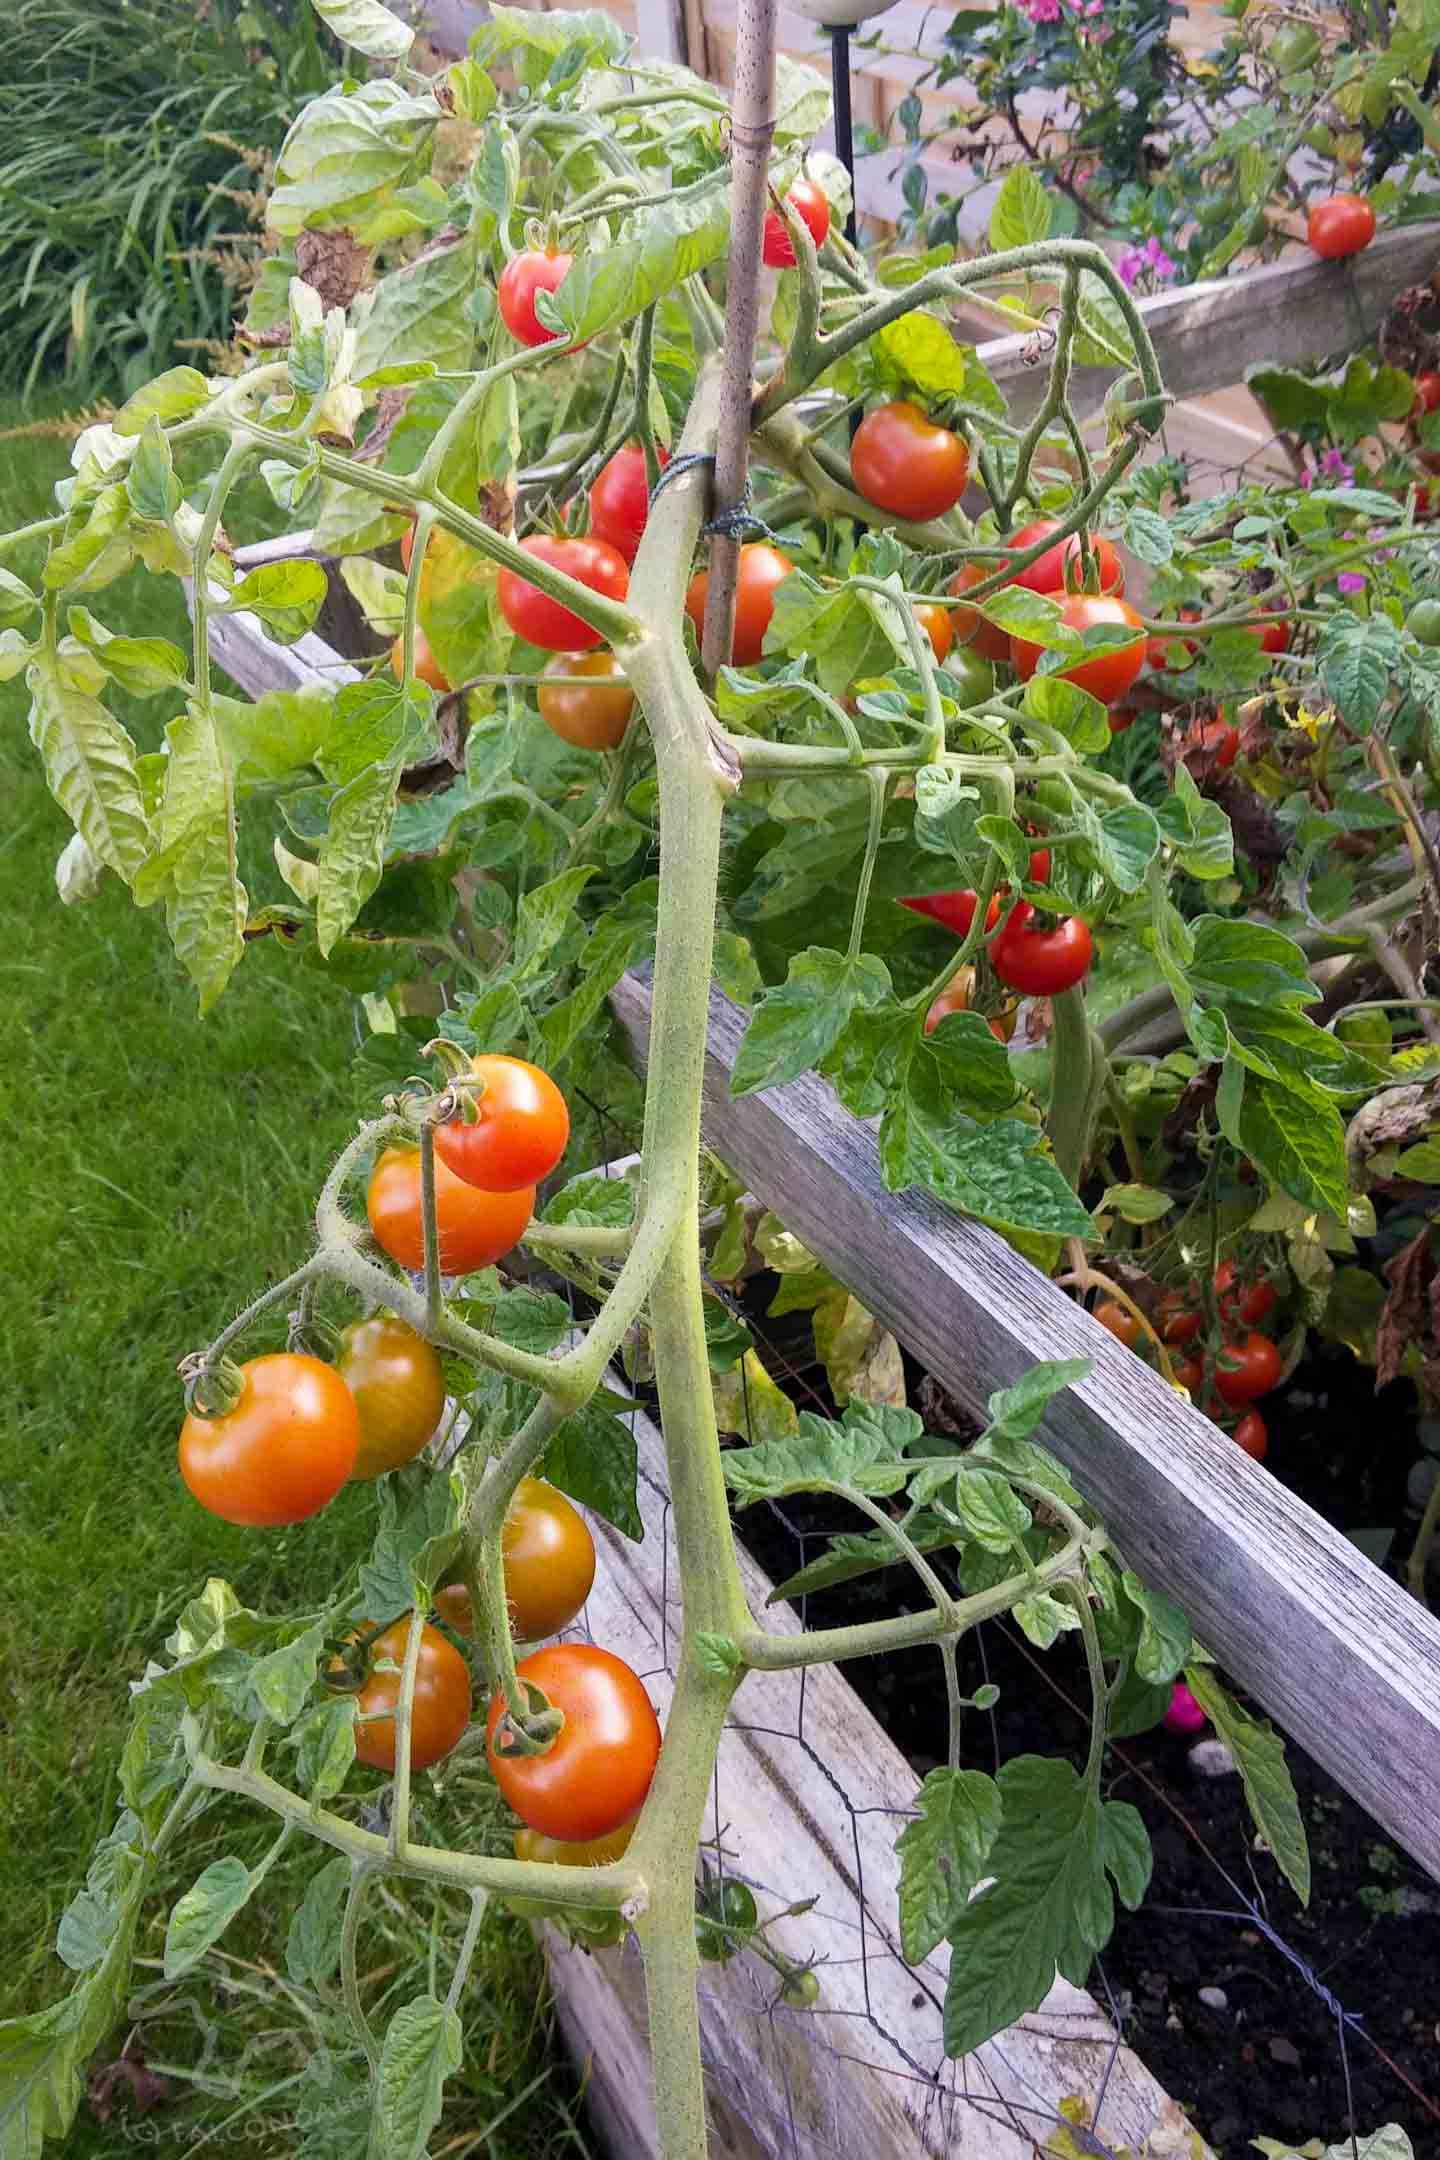 Tomatoes growing in a raised bed. Garden access for the whole family on Falcondale Life blog. Not everyone in the family can get around the garden easily. Improve garden access for little ones and those with mobility problems with these design tips and ideas, starting with bi-fold doors and maybe adding raised beds and well-planned paths.